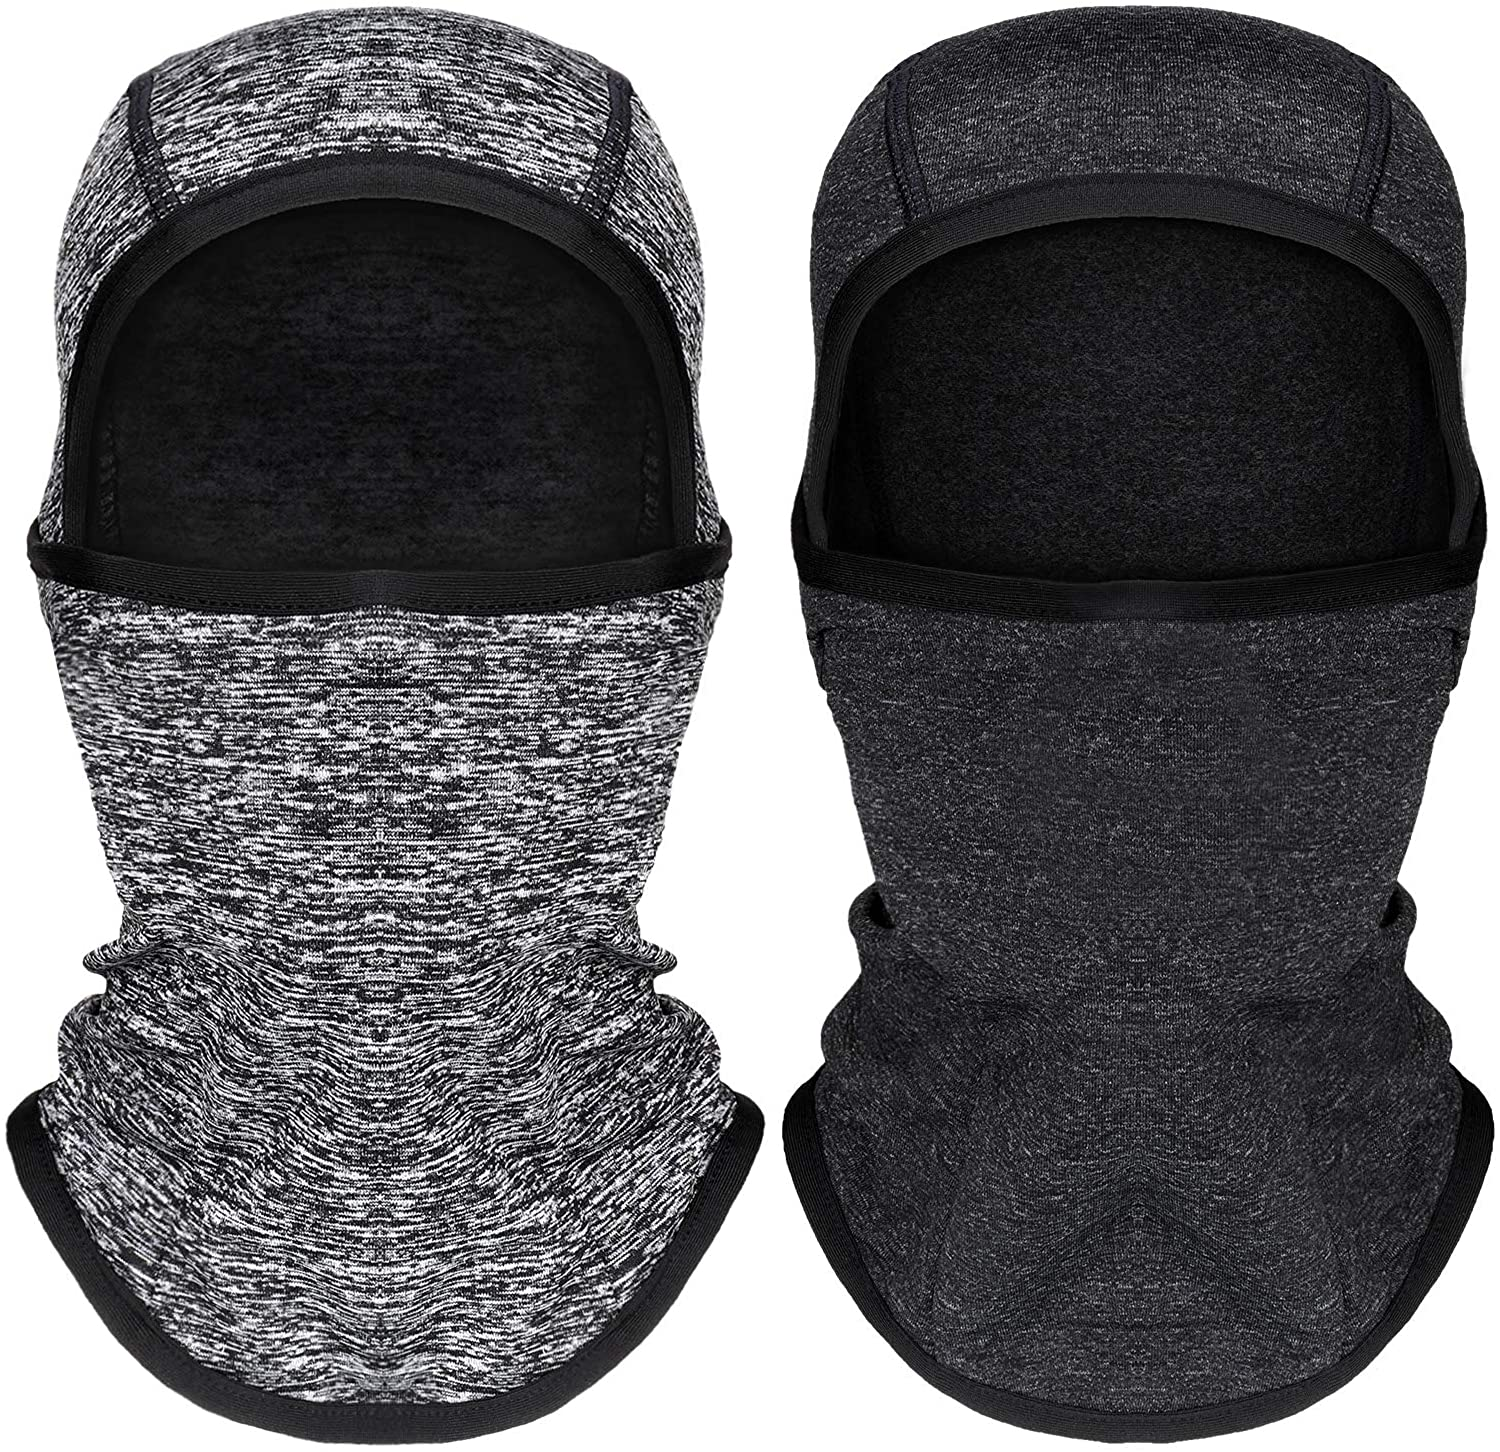 2 Pieces Kids Balaclava Windproof Ski Face Covering for Cold Weather Children Fleece Neck Warmer with Helmet Liner Hood for Boys Girls, 2 Colors